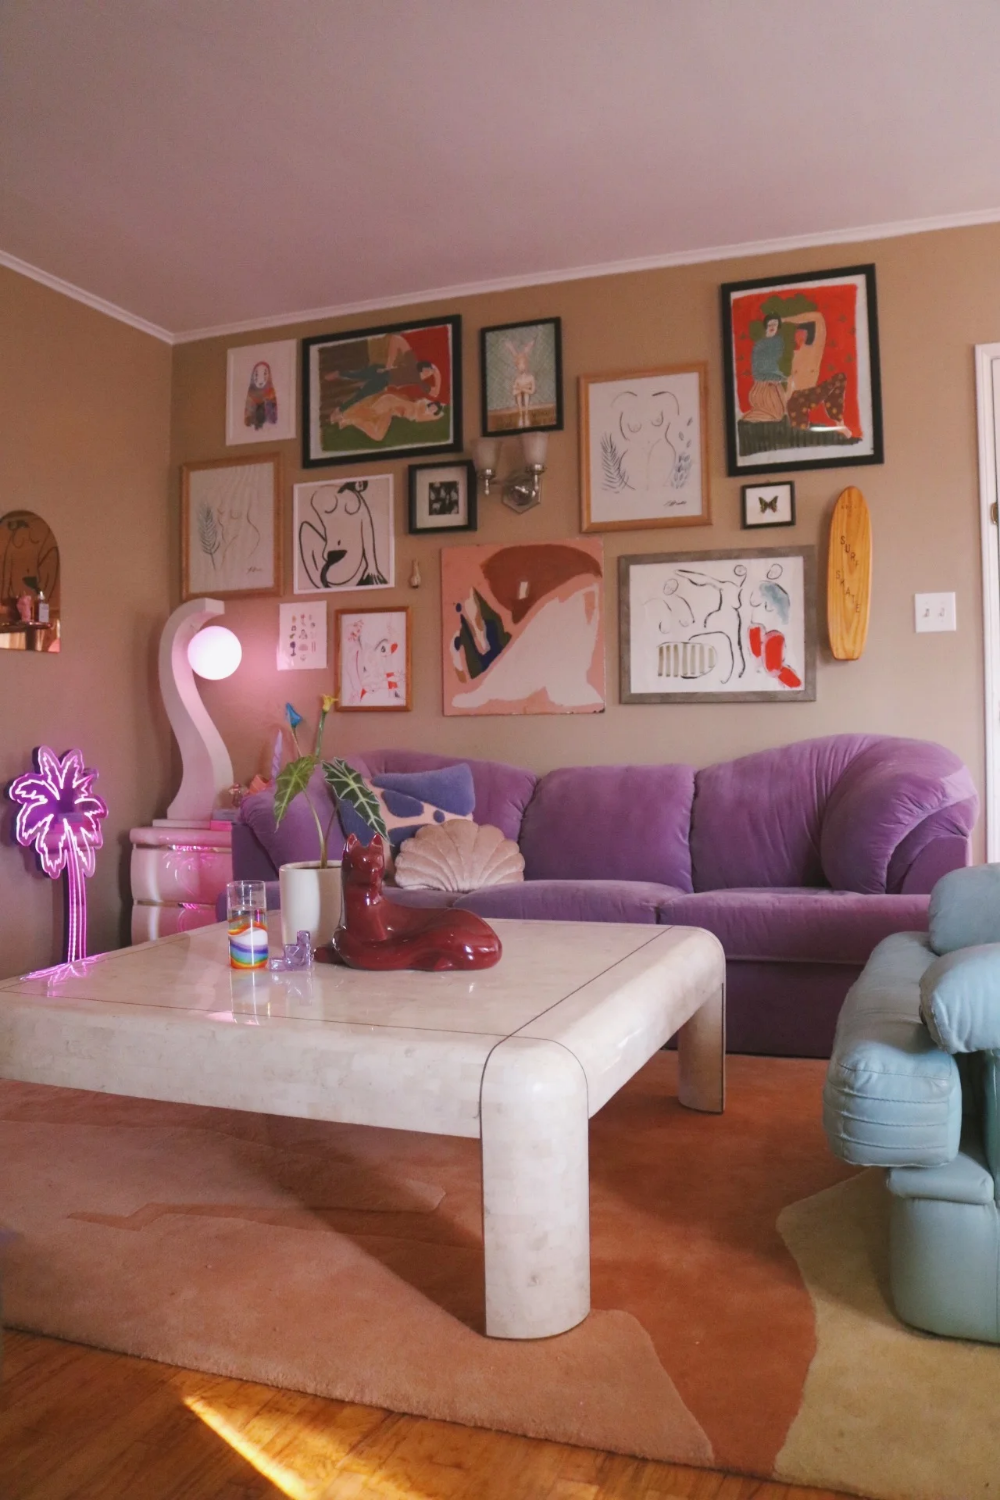 Photo of This Instagram Curates the Cutest Kitschy Home Decor From the 80s and 90s